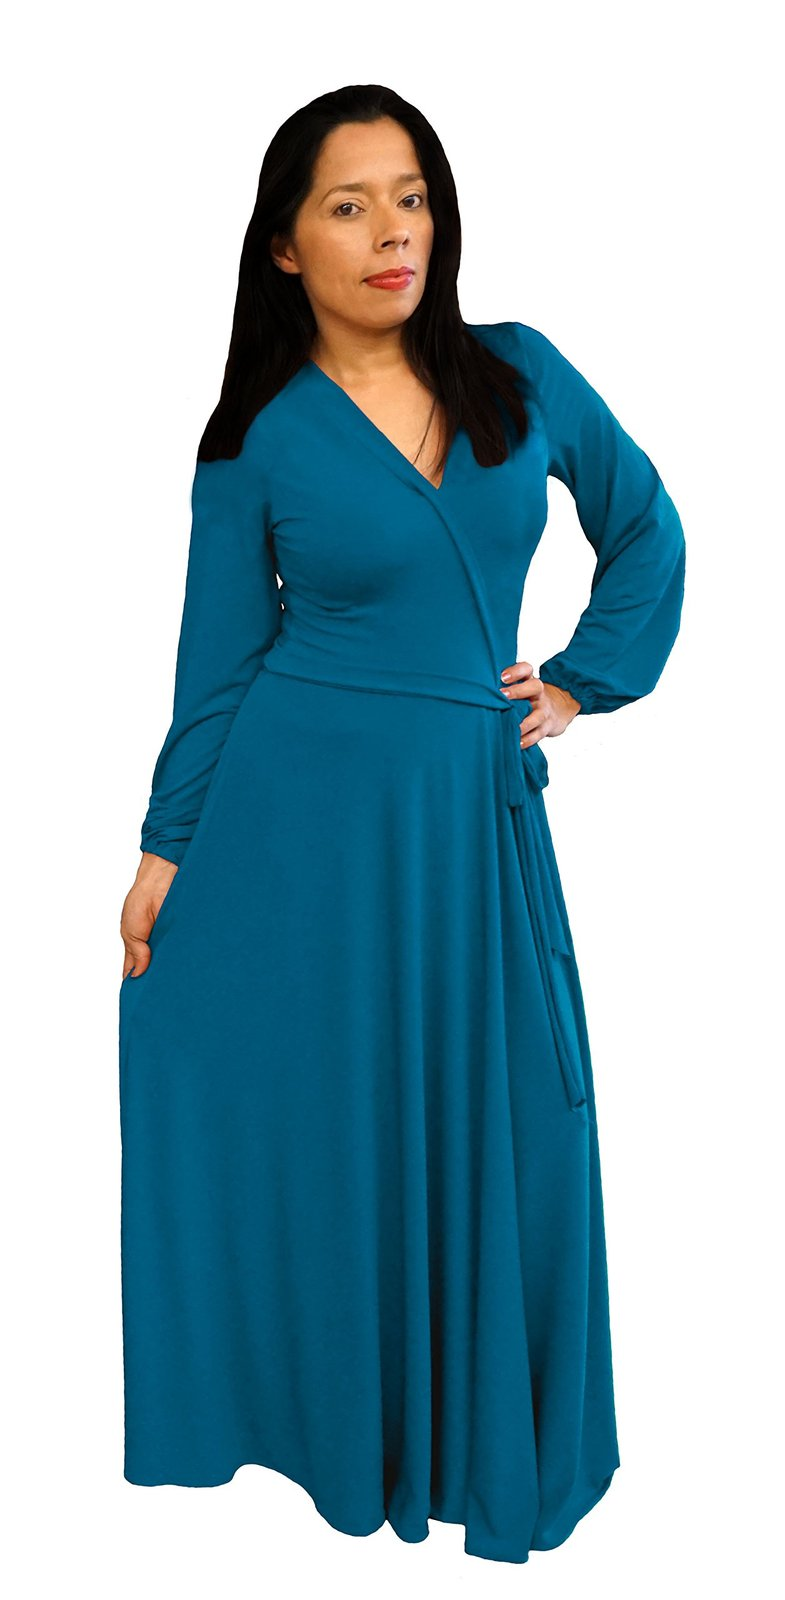 DBG Women's Teal Polyester Long Sleeves Maxi Dress-Small